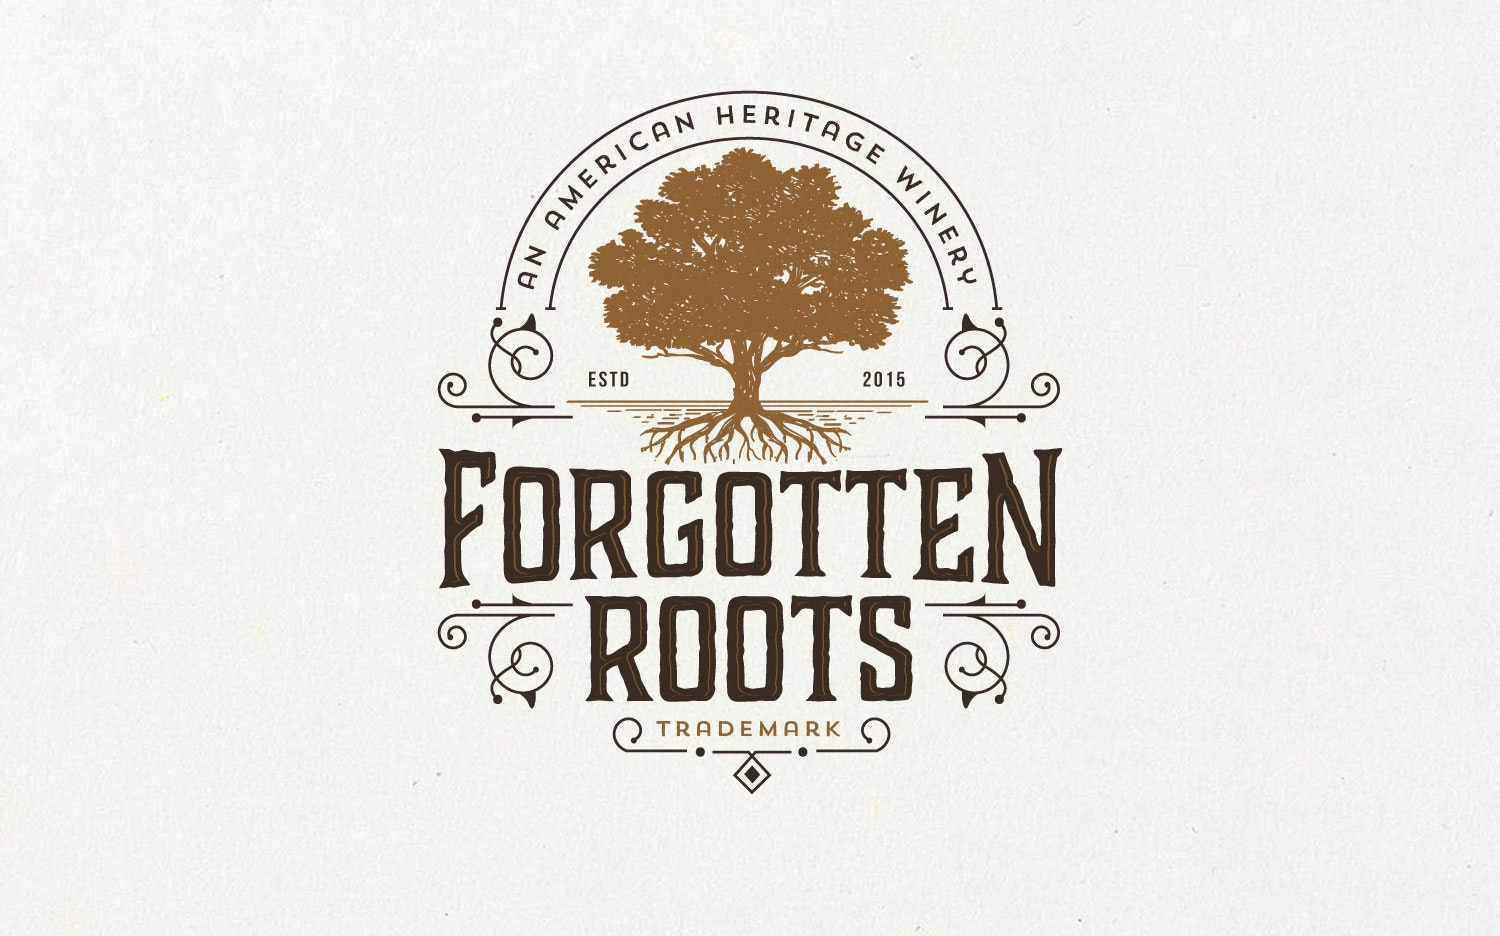 11 roots